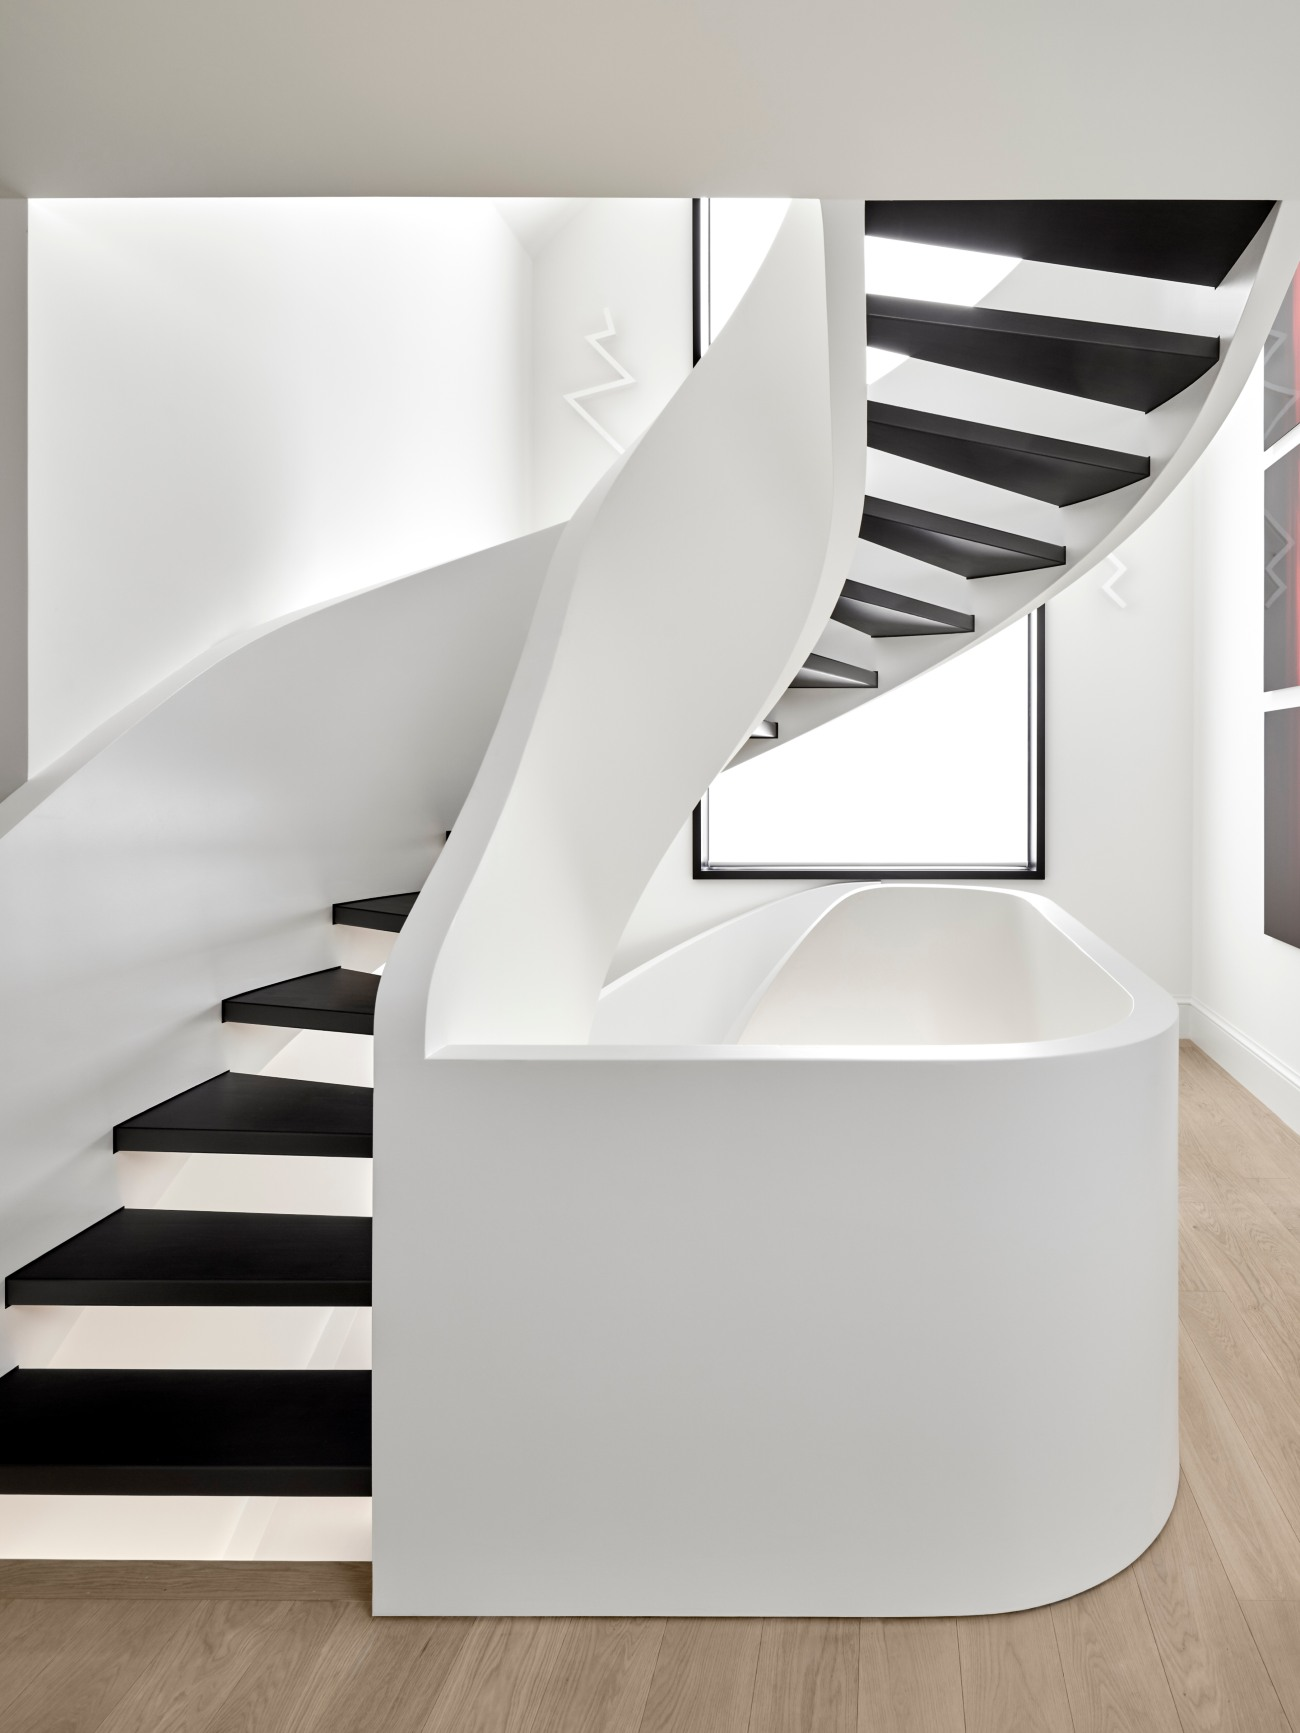 Another view of the staircase.